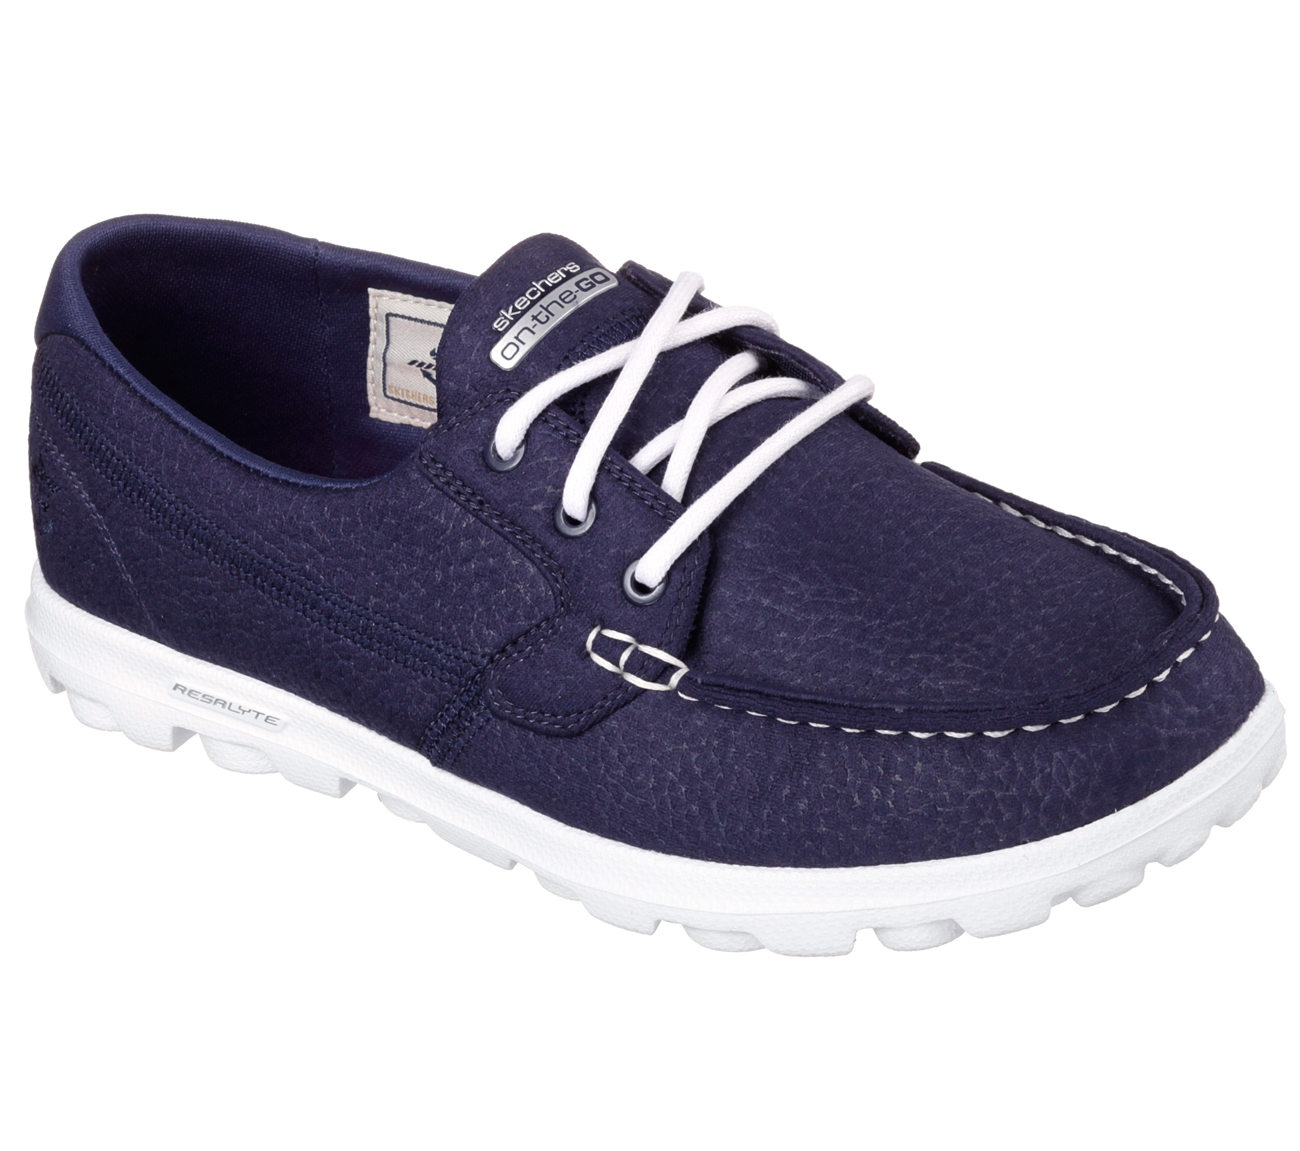 Tods New Arrival Women Casual Shoes Blue 57182